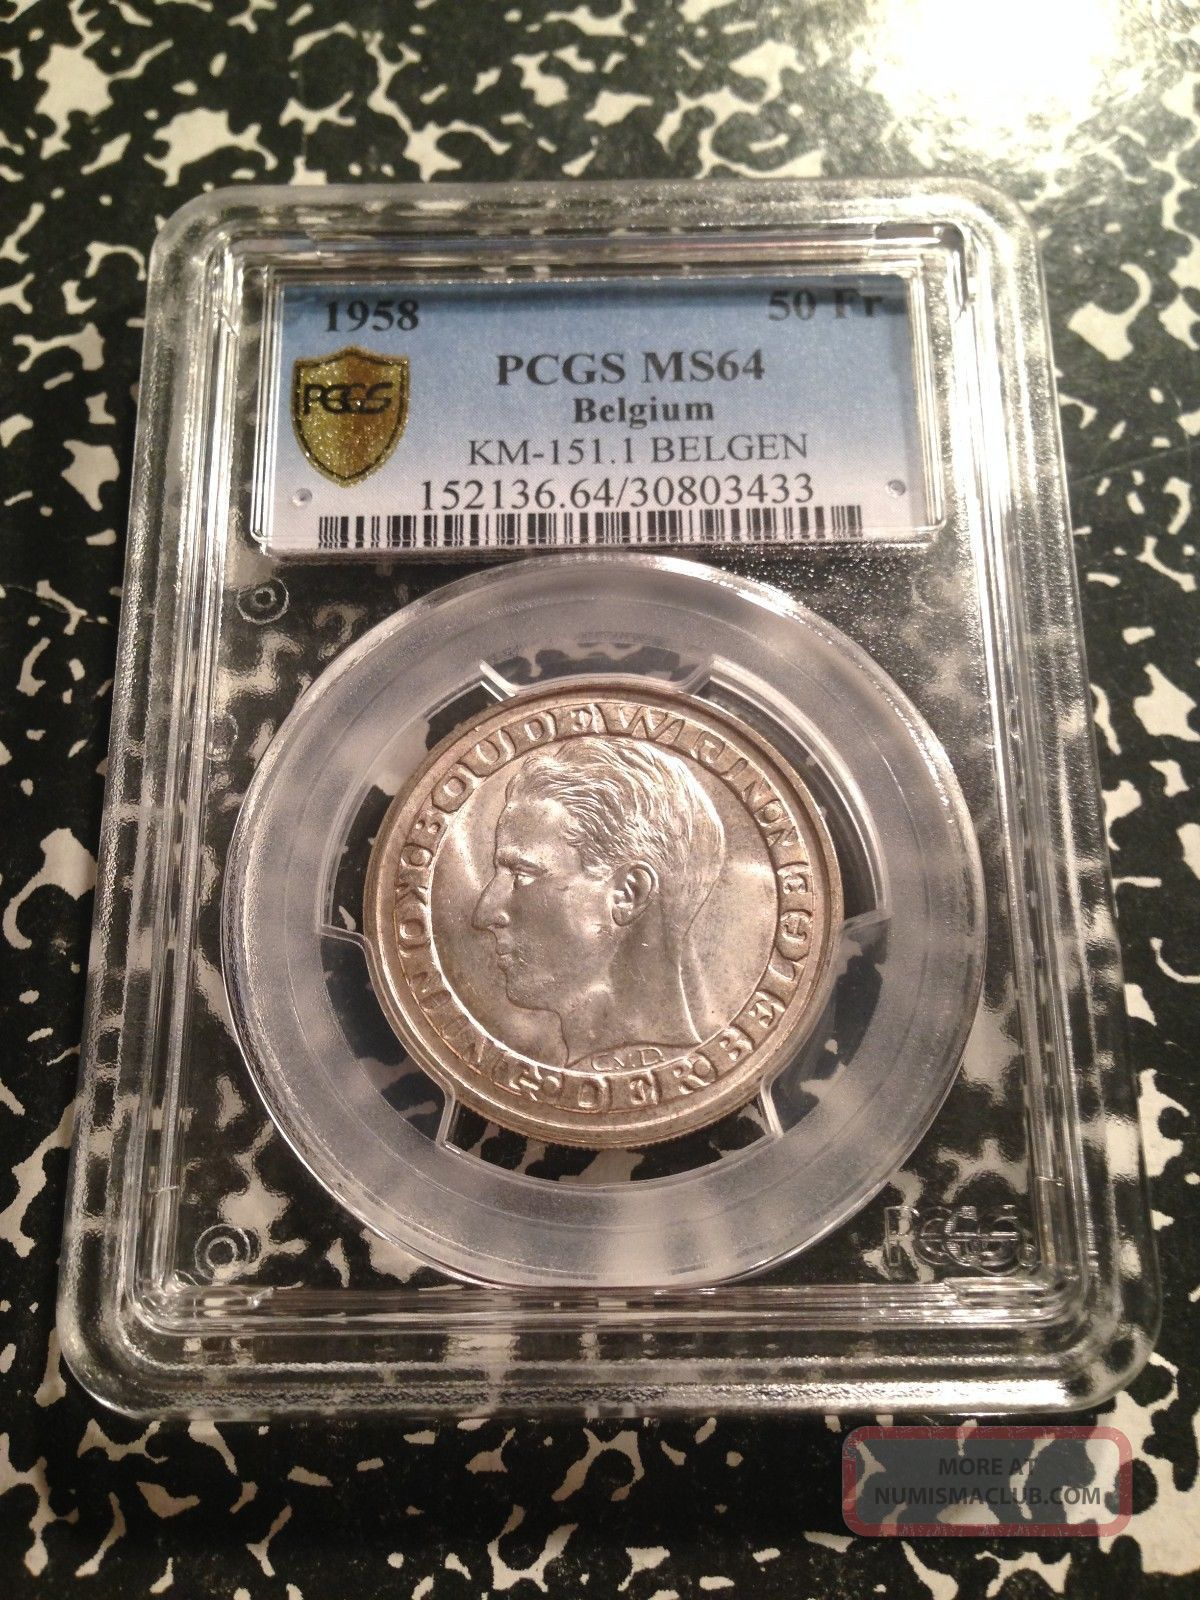 1958 Belgium 50 Francs Pcgs Ms64 G573 Silver World ' S Fair Europe photo